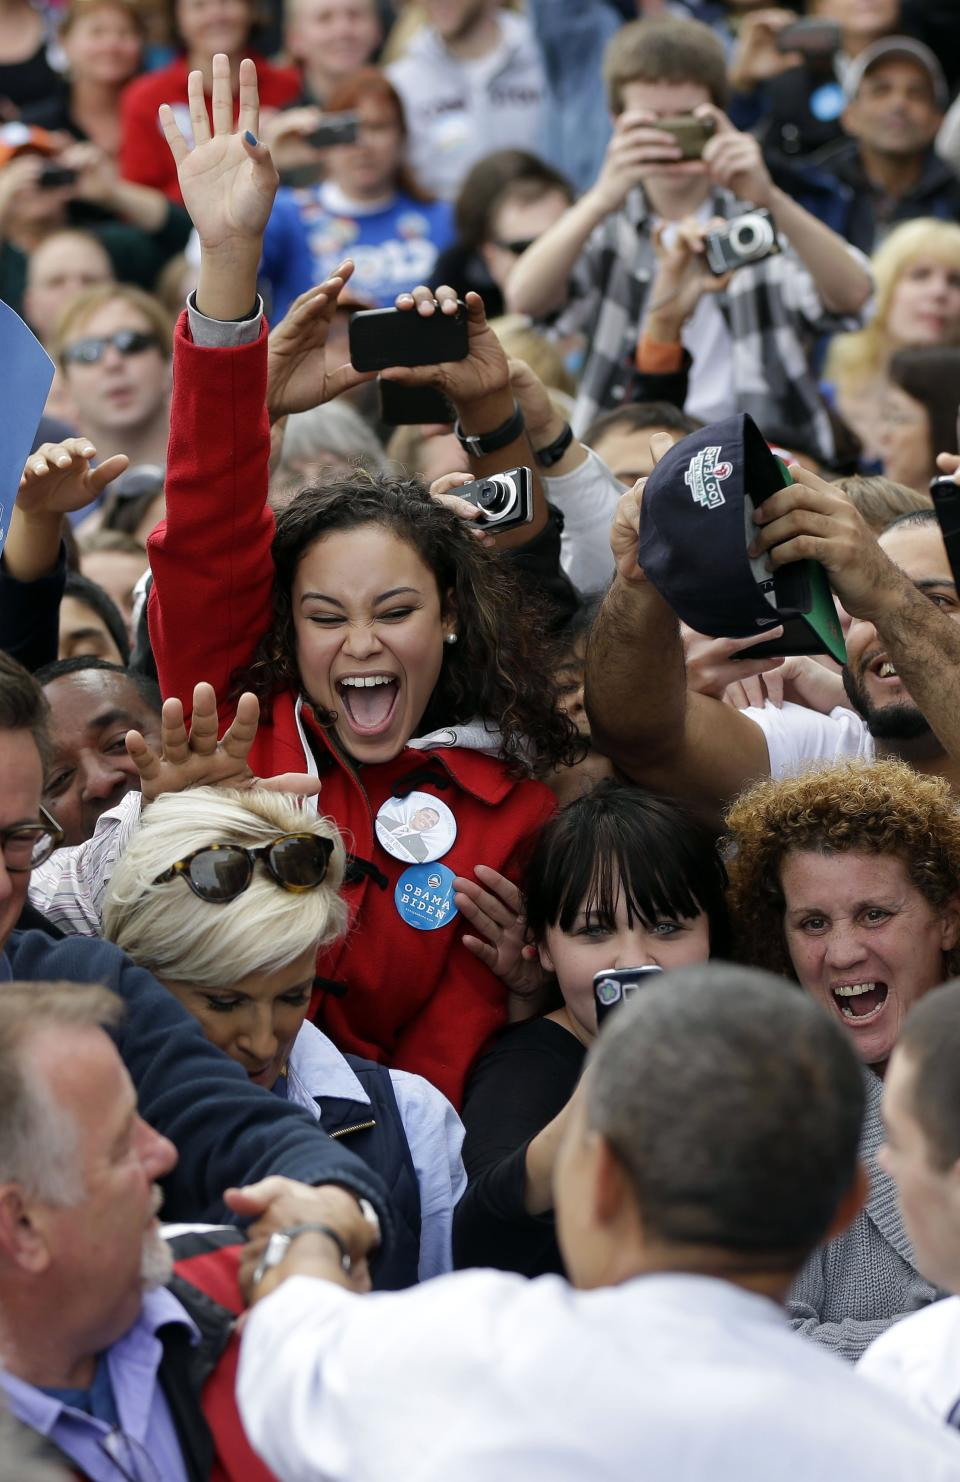 A supporter reacts after greeting President Barack Obama at a campaign event at Elm Street Middle School, Saturday, Oct. 27, 2012 in Nashua, N.H. (AP Photo/Pablo Martinez Monsivais)